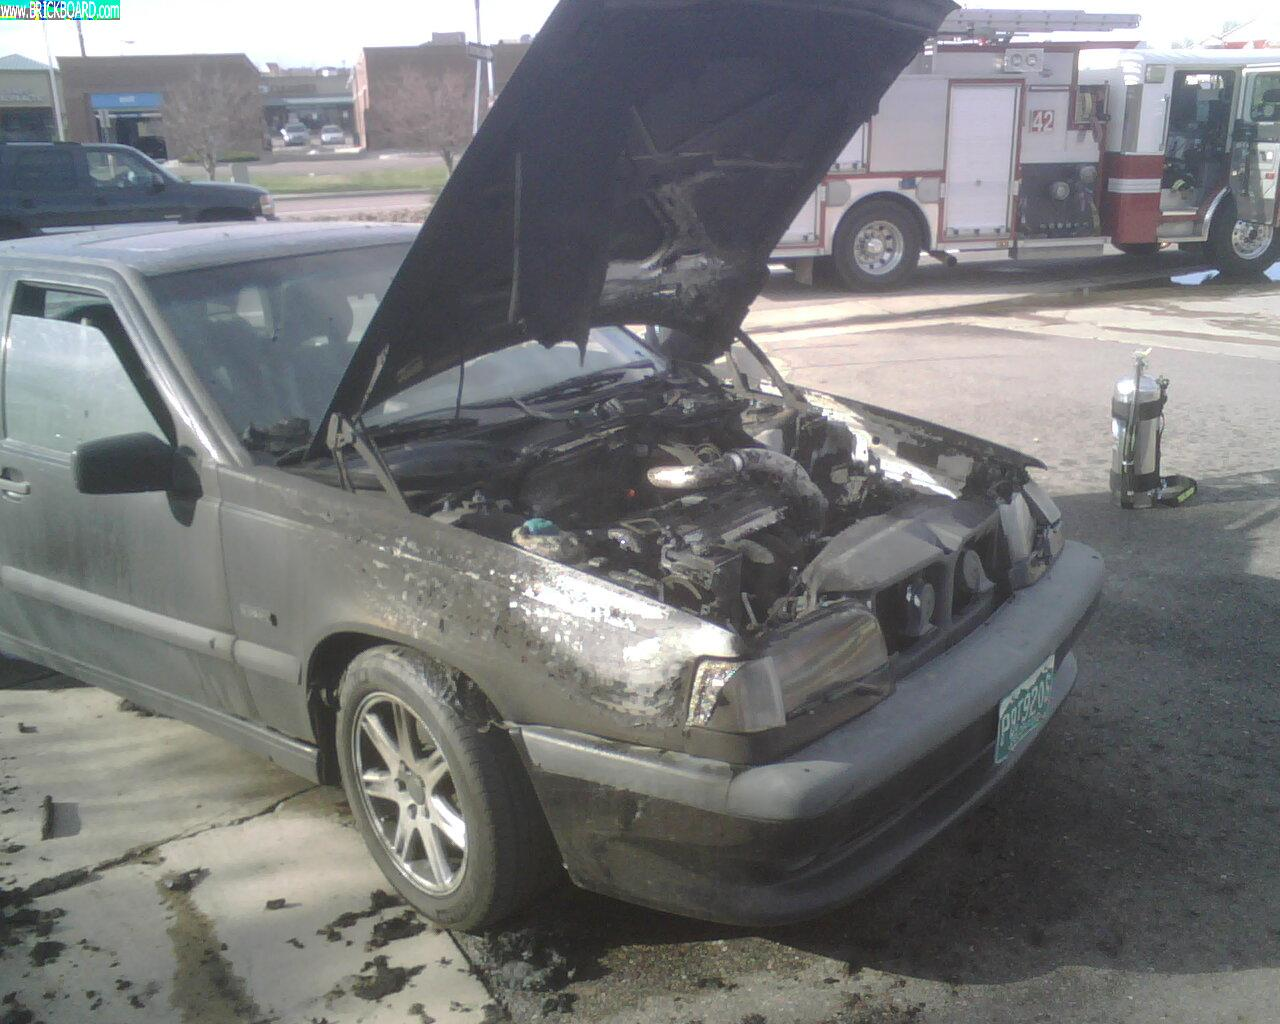 Volvo 850 -- Hopefully this will help someone?  A spark from the fan started it.